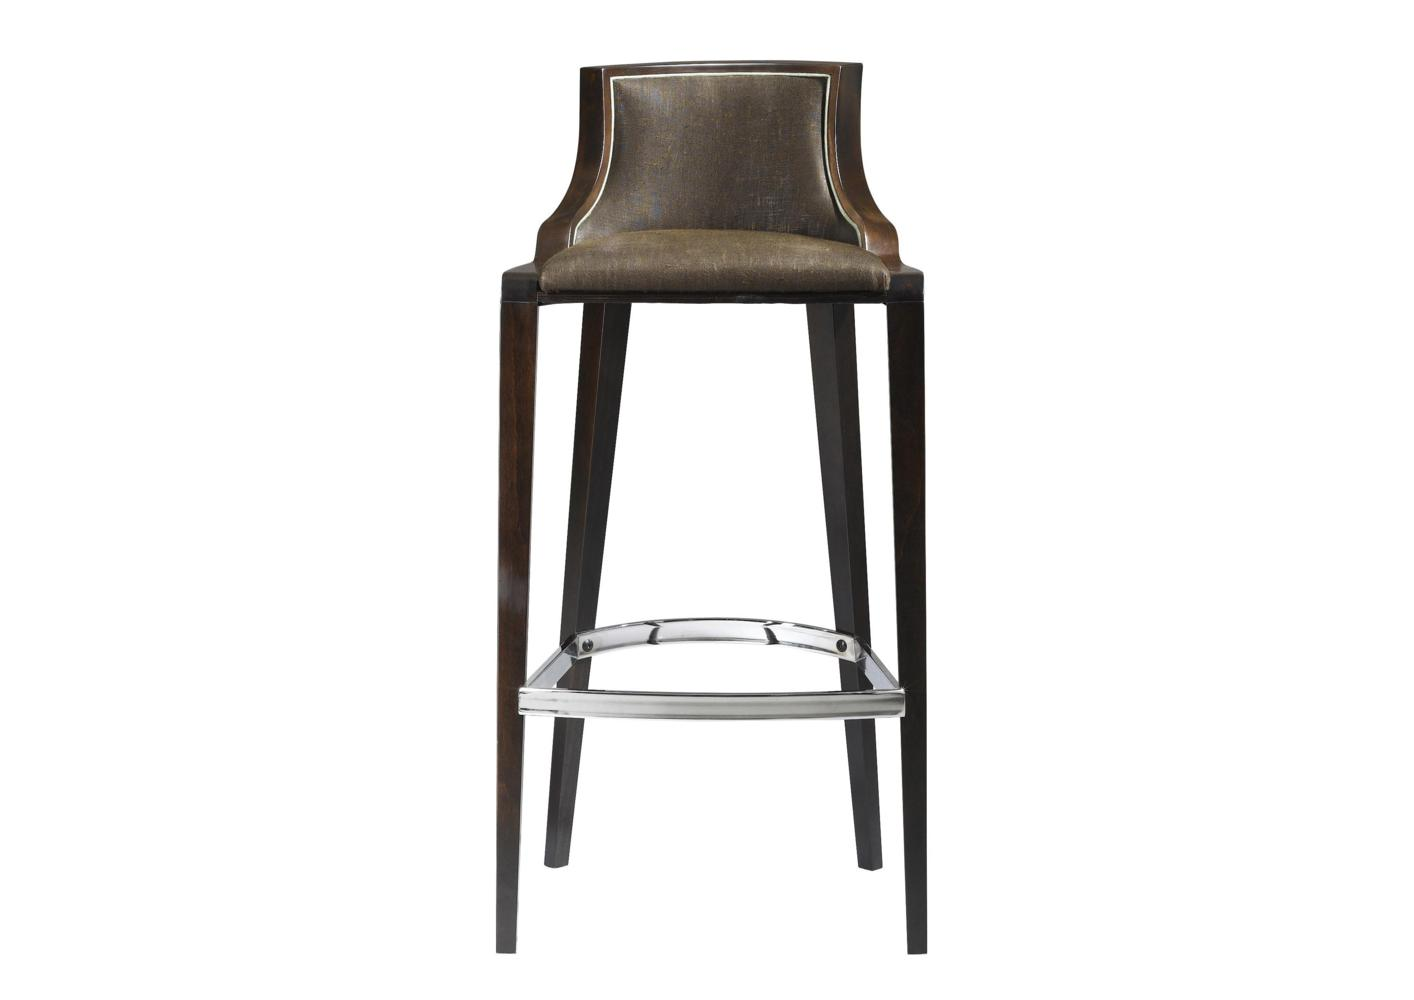 Chaise De Bar Marron Tabouret De Bar 4 Pieds Marron Et Noir Cuir